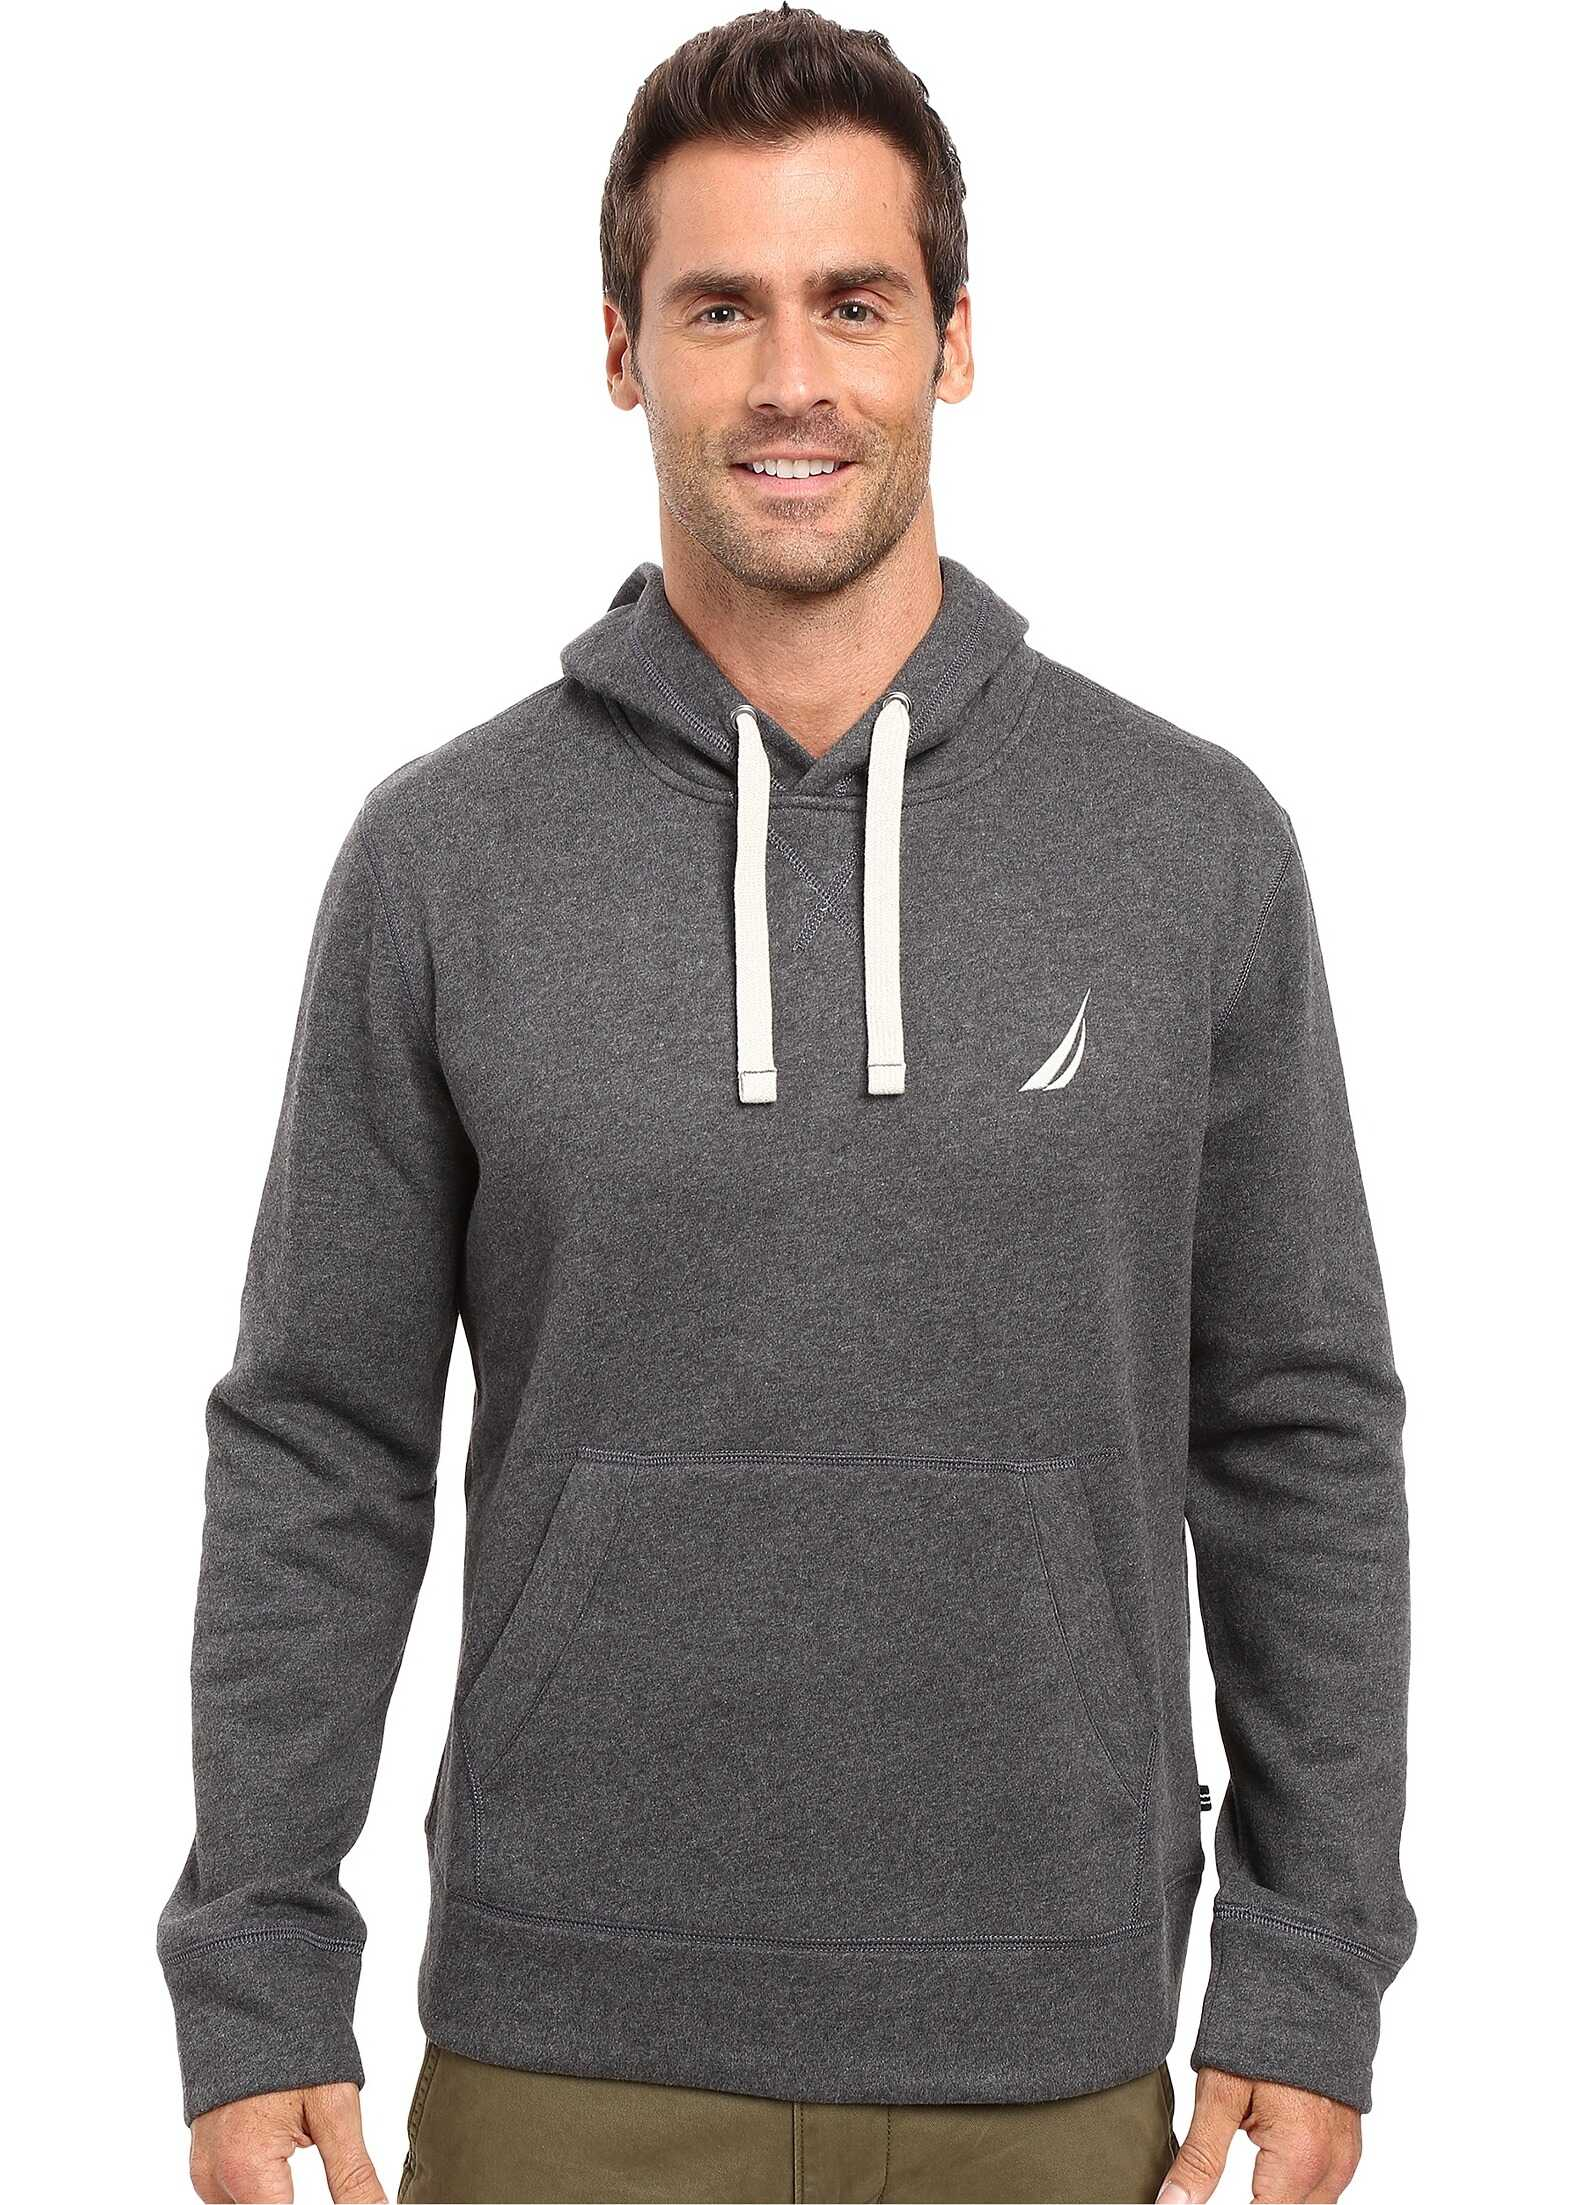 Nautica Pullover Hoodie Charcoal Heather